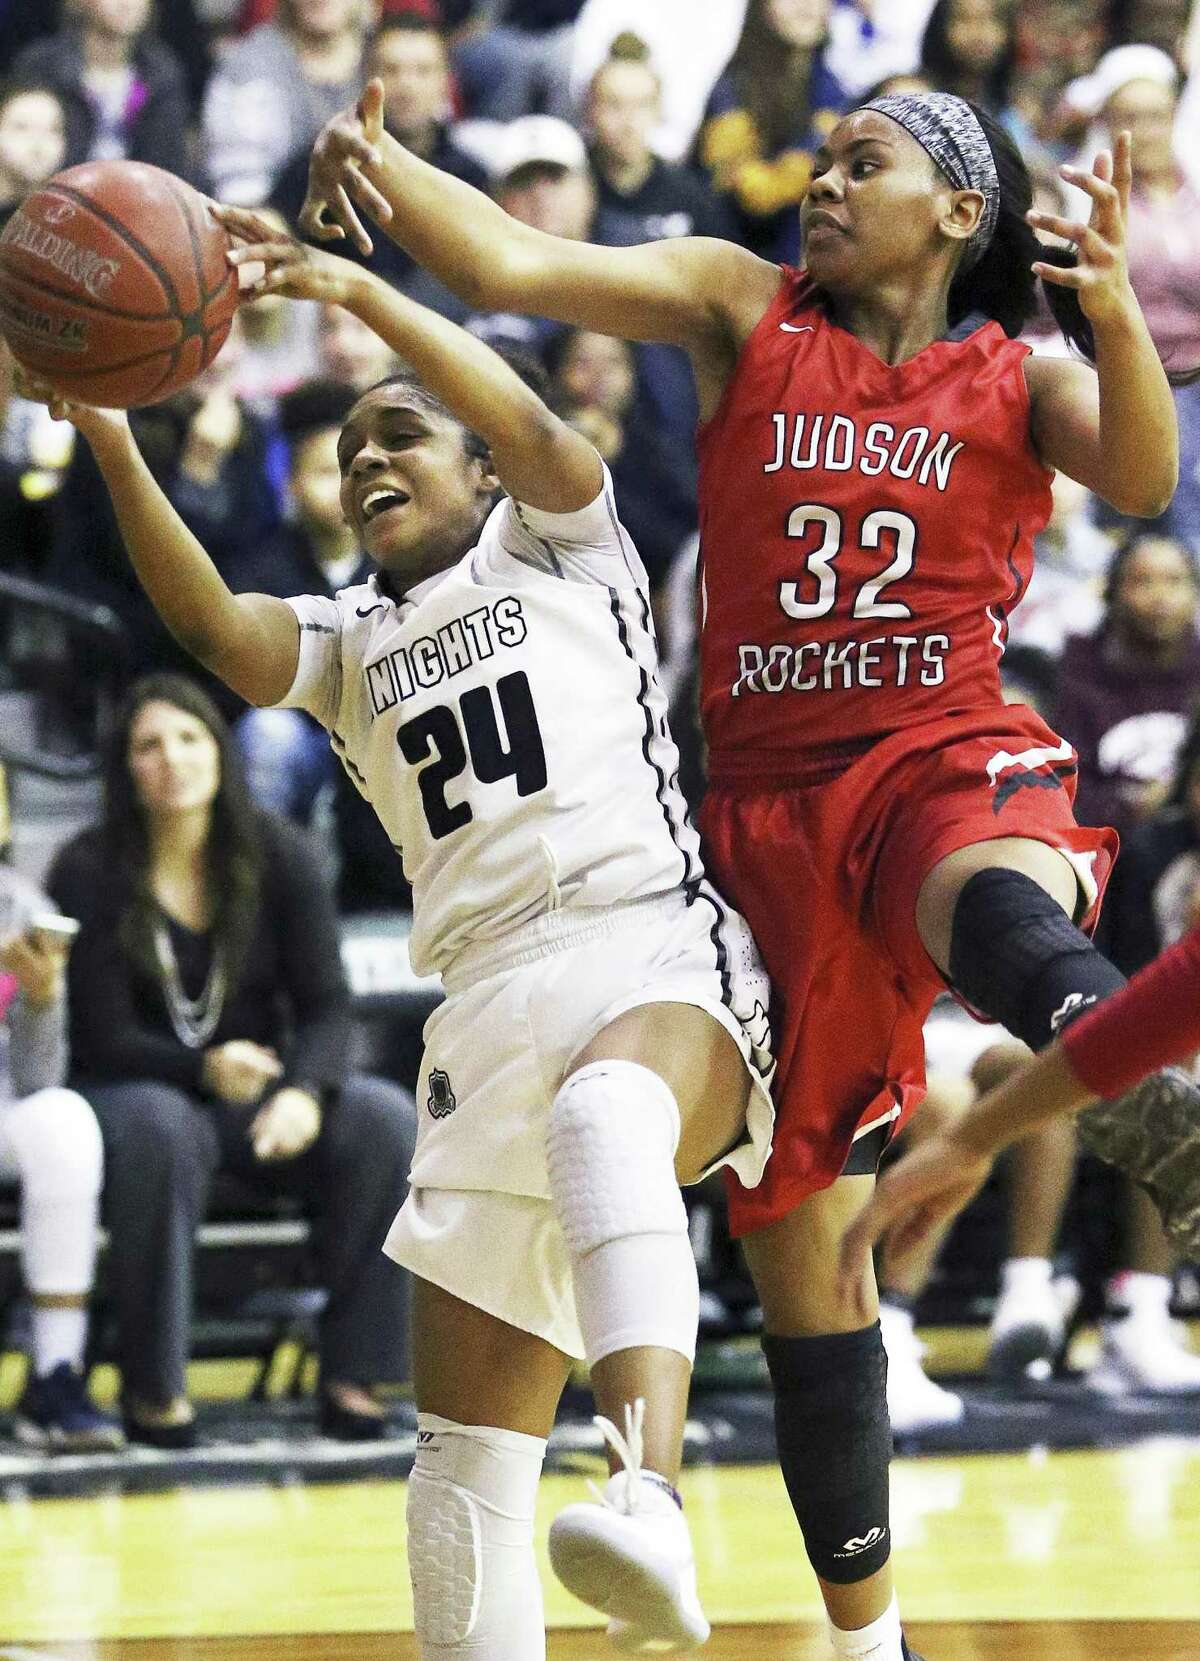 Knight guard Desiree Caldwell yanks down a defensive rebound away from Desiree Lewis as Steele hosts Judson in girls basketball on January 2, 2018